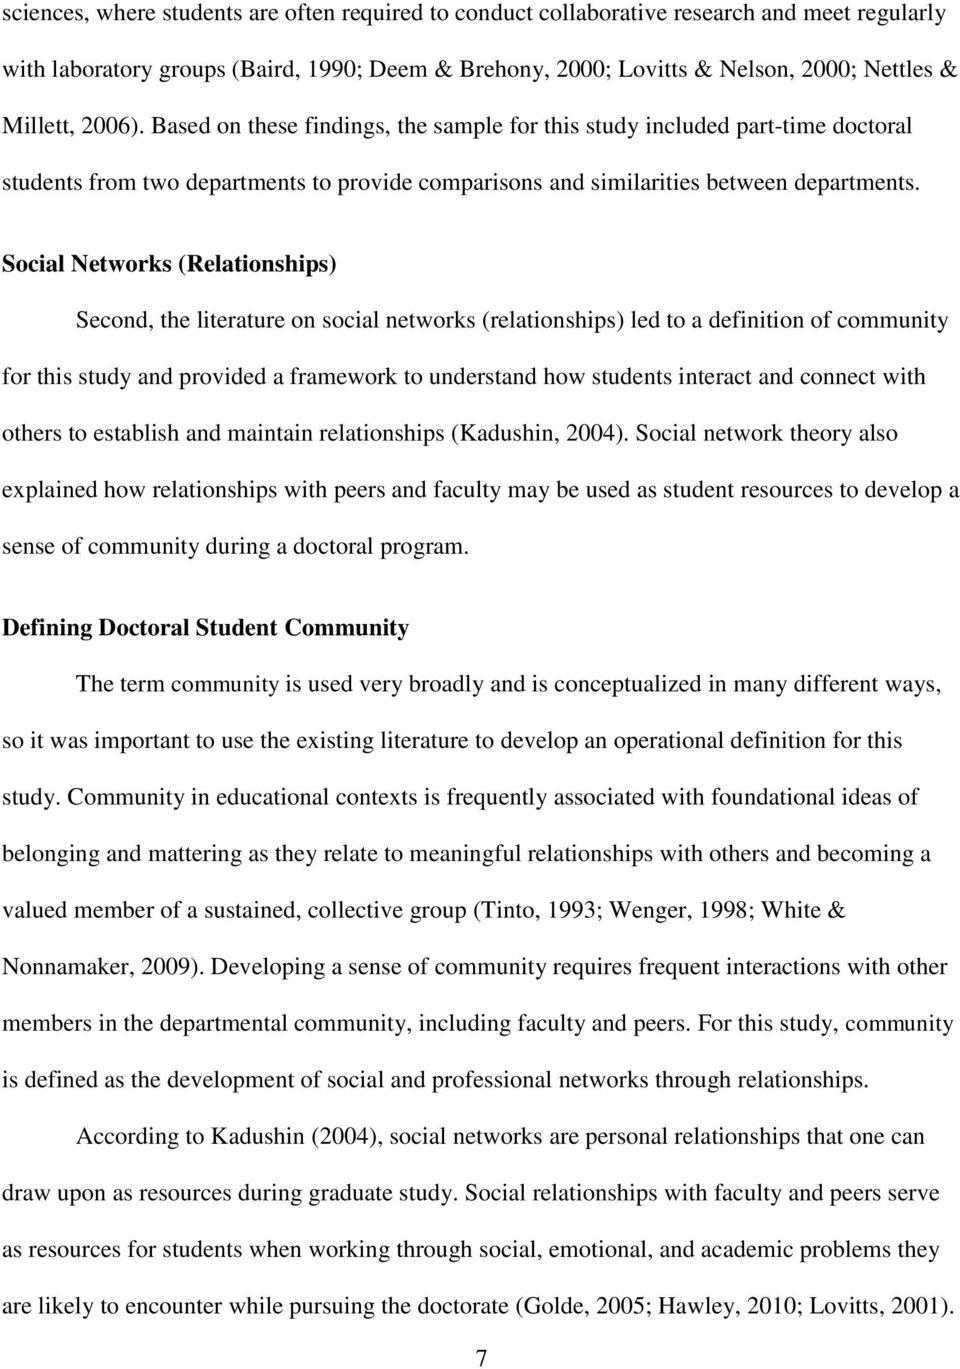 Social Networks (Relationships) Second, the literature on social networks (relationships) led to a definition of community for this study and provided a framework to understand how students interact